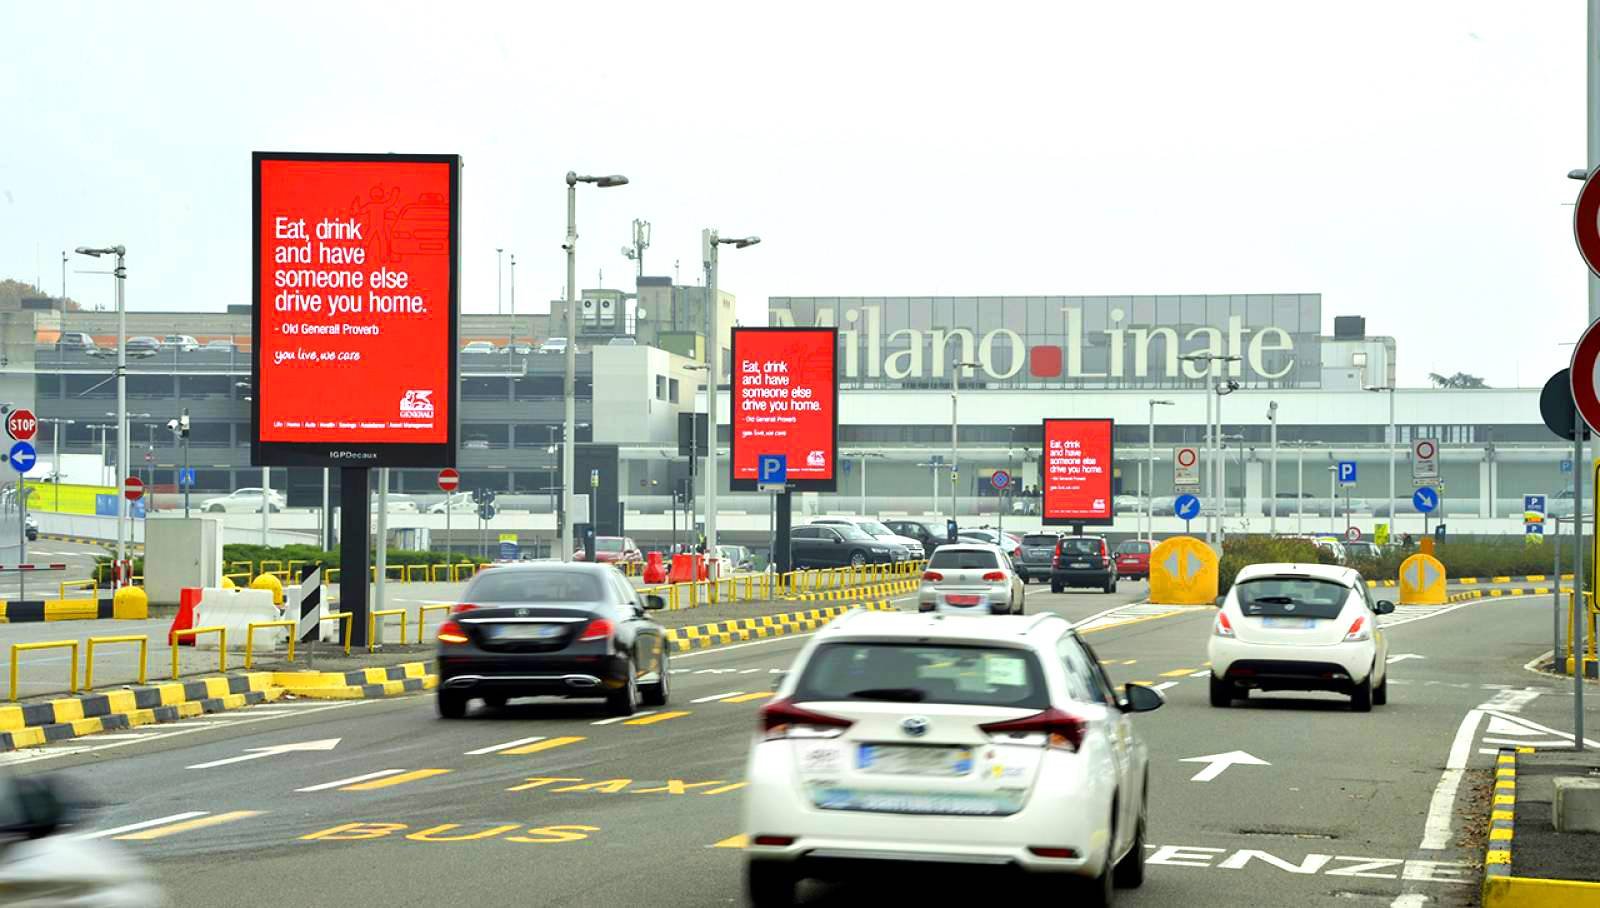 IGPDecaux airport advertising 8sq m at Linate for Generali